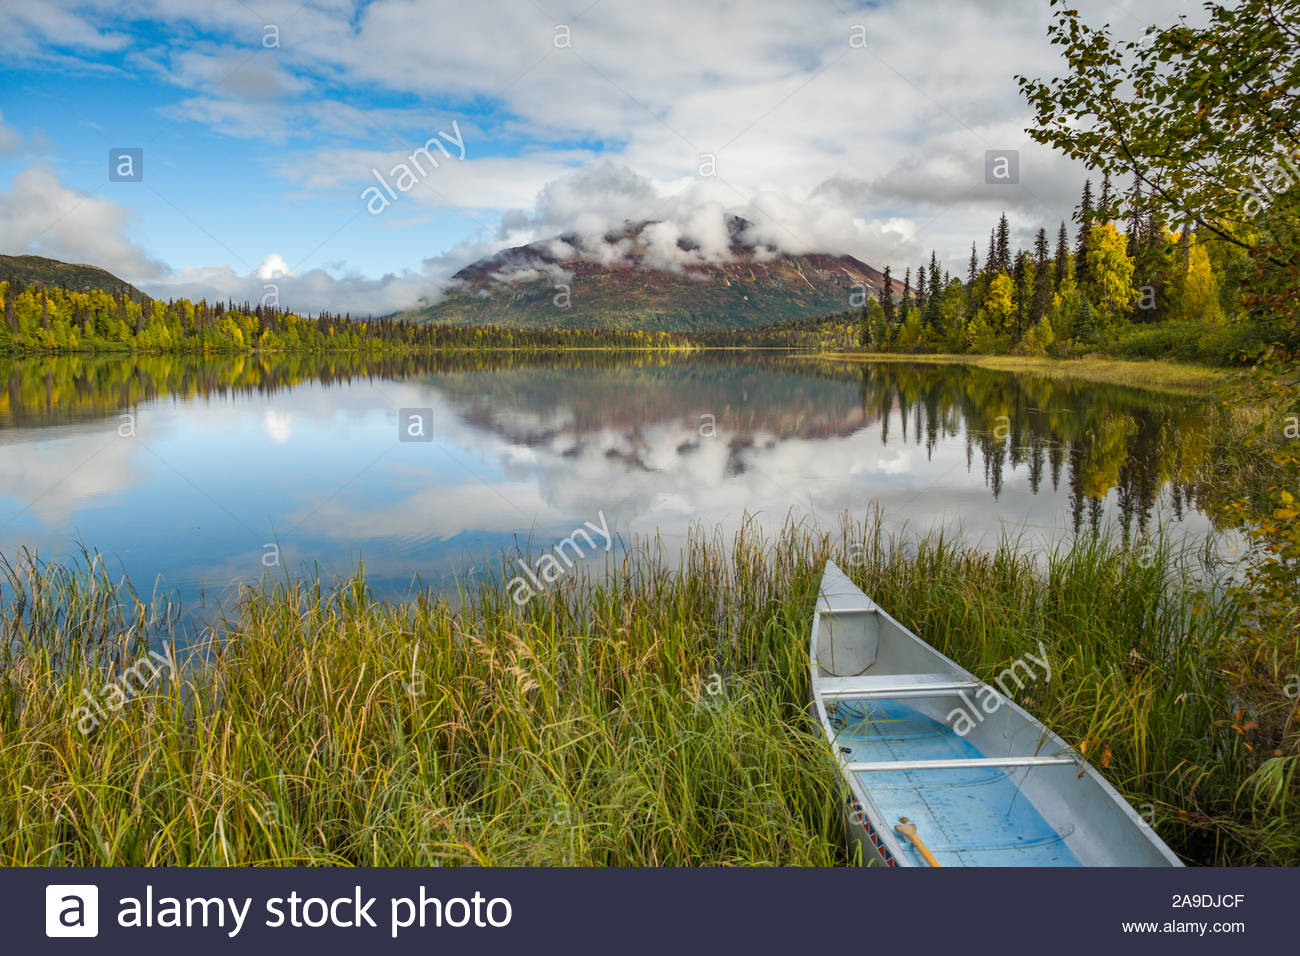 empty-aluminum-canoe-on-lakeshore-of-miami-lake-talkeetna-mountains-matanuska-susitna-alaska-usa-2A9DJCF.jpg